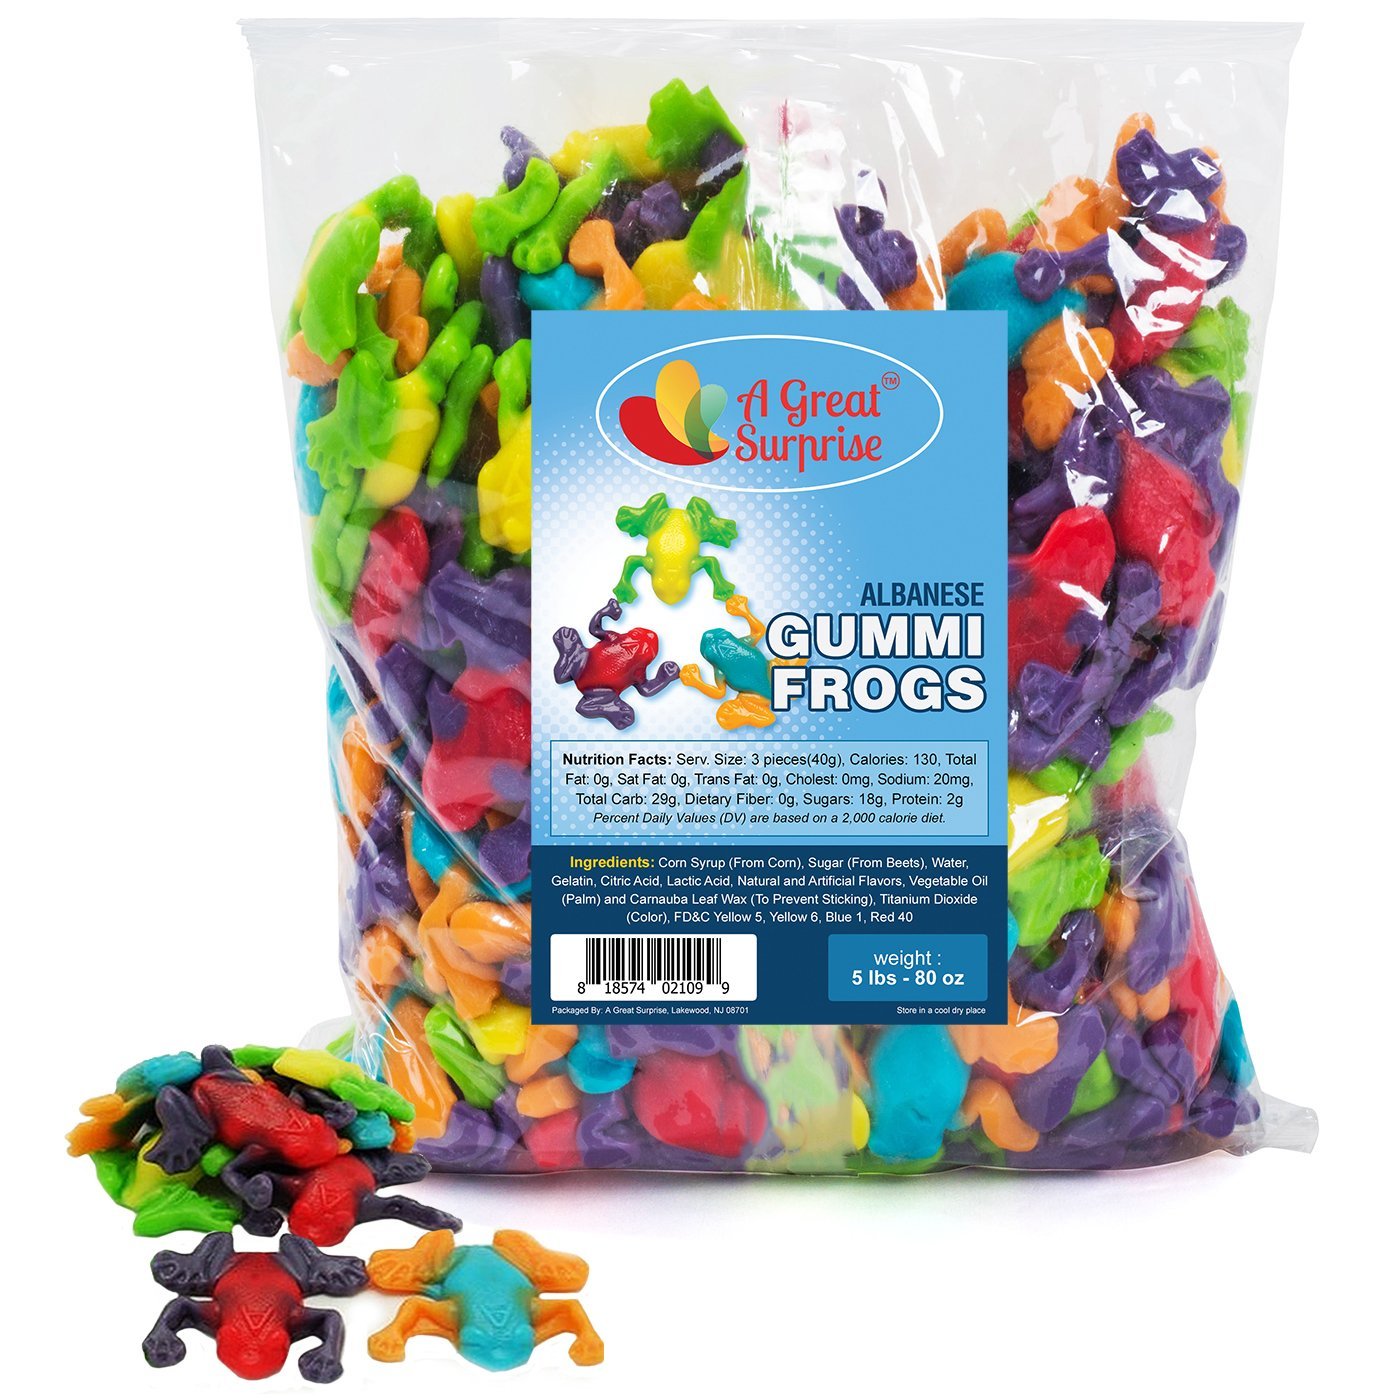 Gummy Frogs - Gummi Rainforest Frogs - Bulk Candy Gummies 5 LB by A Great Surprise